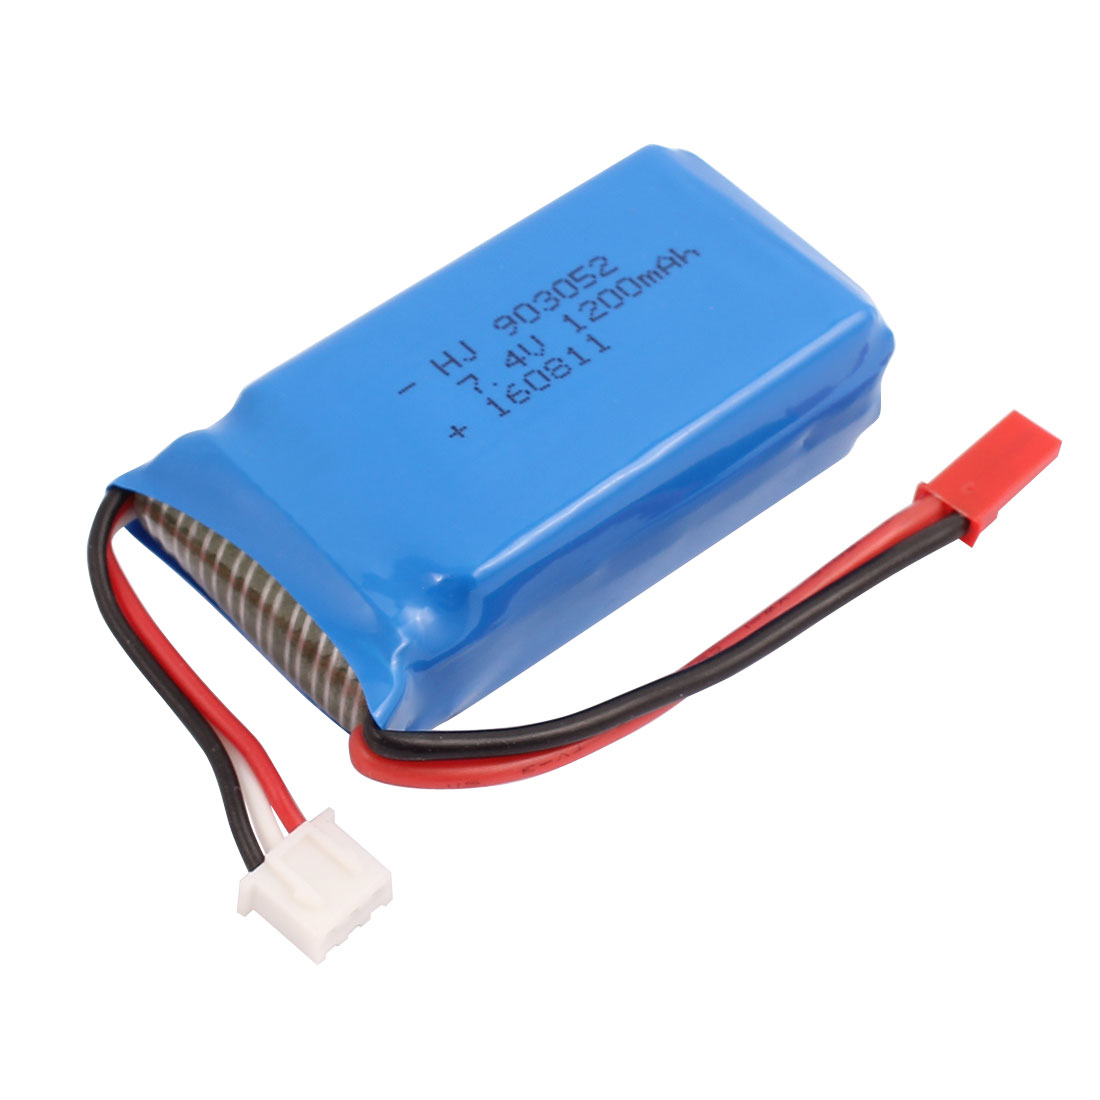 7.4V 1200mAh Charging Lithium Polymer Li-po Battery JST-2P XH-3P Connector for RC Airplane Aircraft